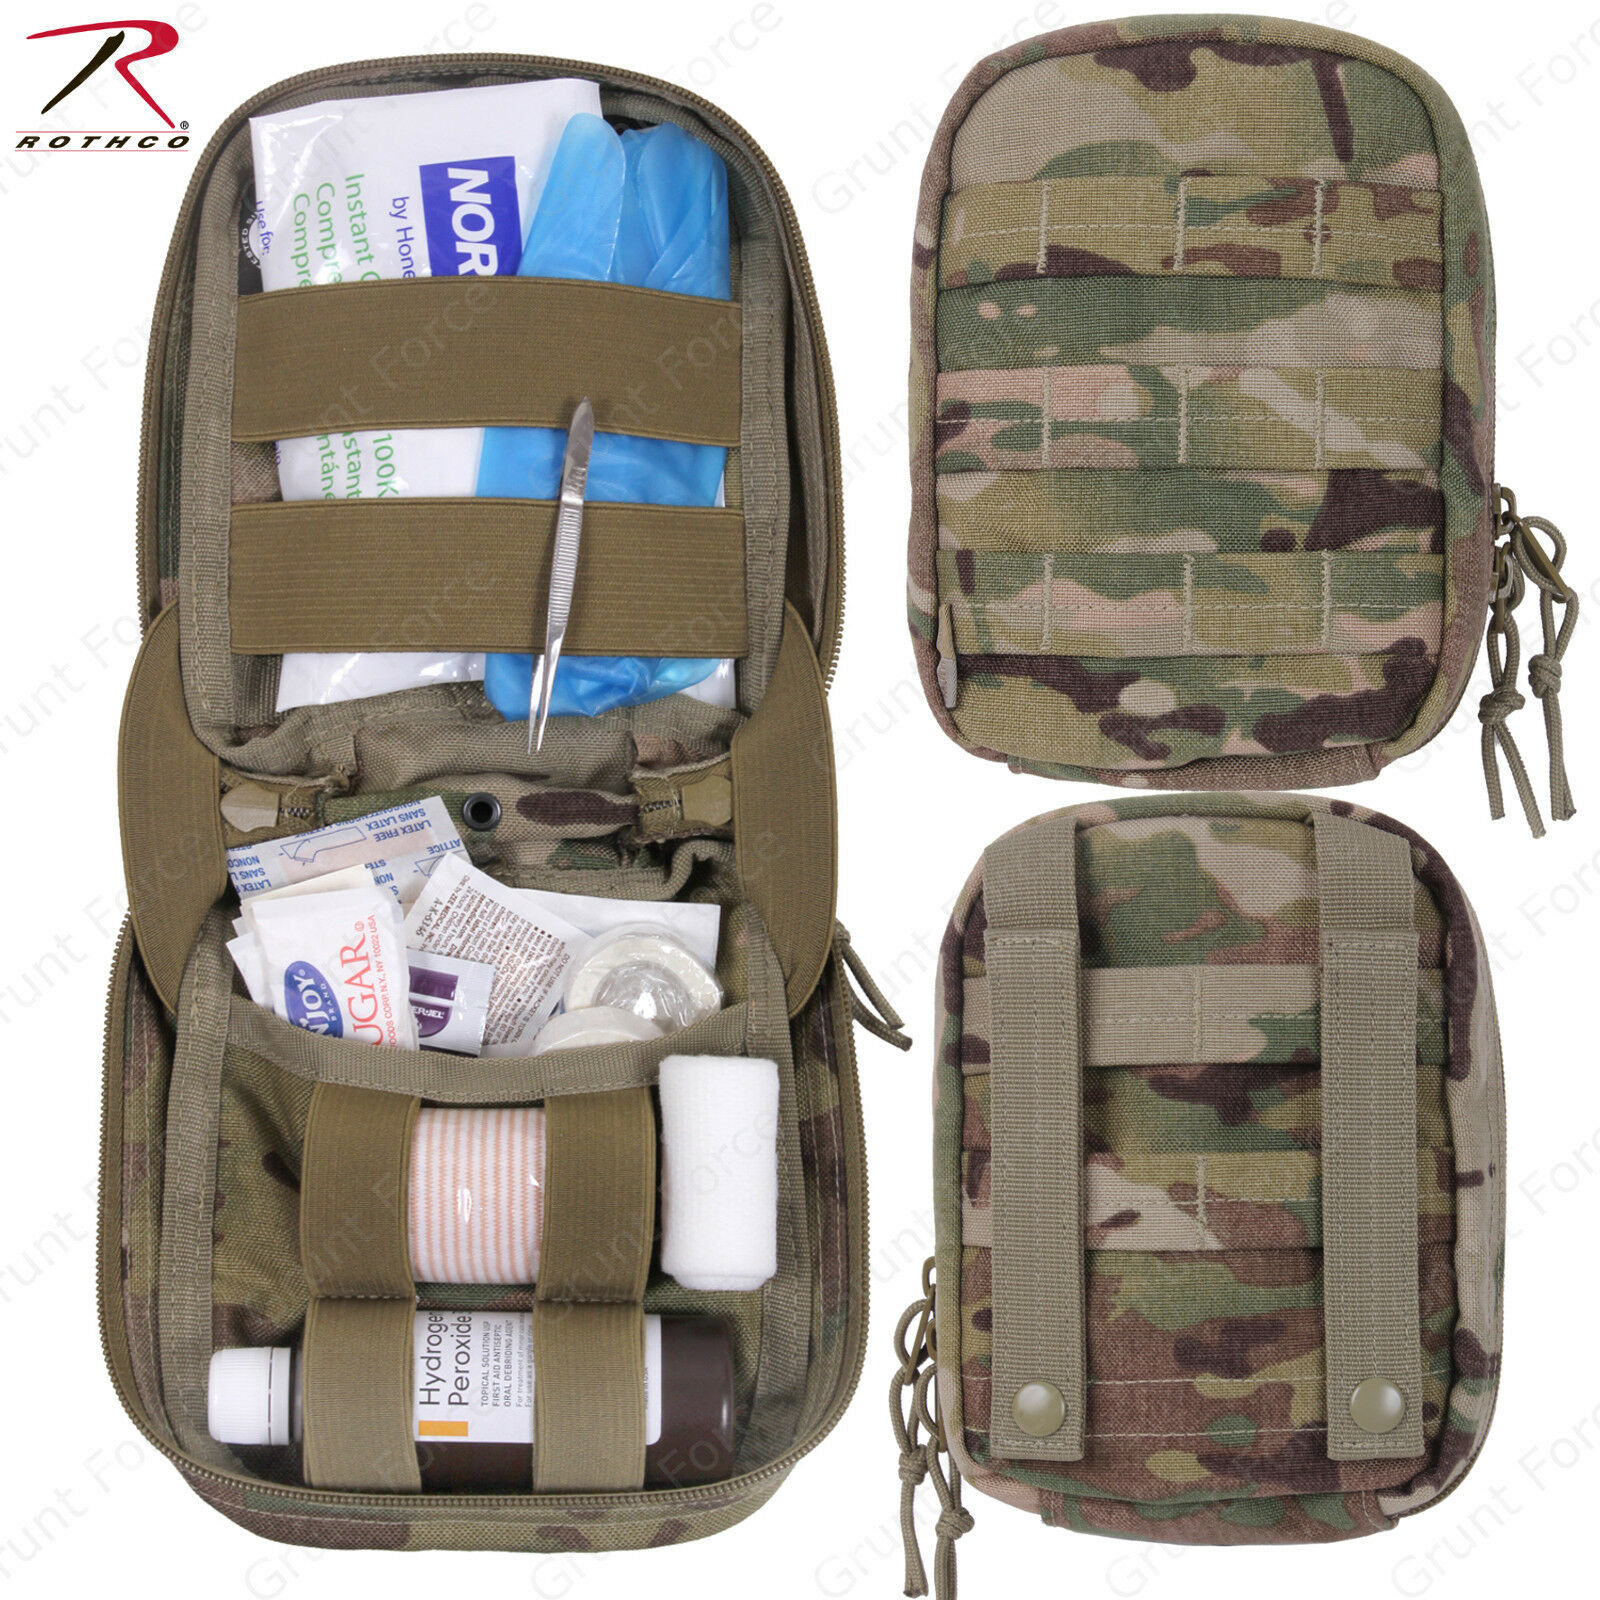 redhco MultiCam MOLLE  Tactical Trauma First Aid Kit - Includes Medical Supplies  hottest new styles